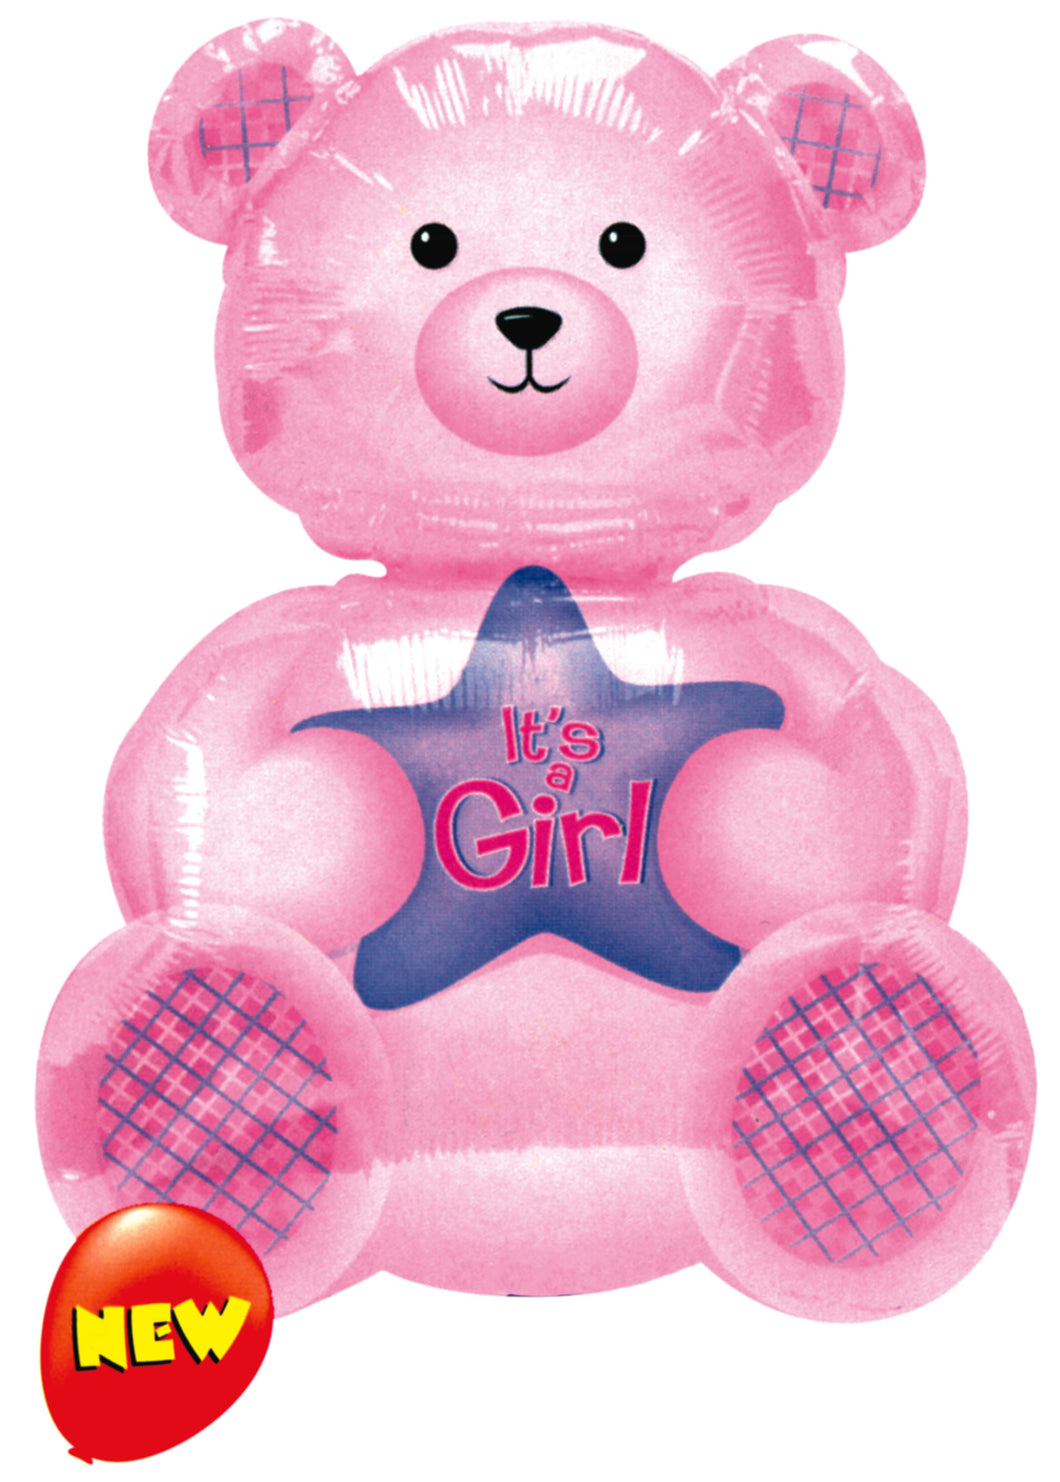 Pink Teddy 'It's a Girl' - Foil Balloon